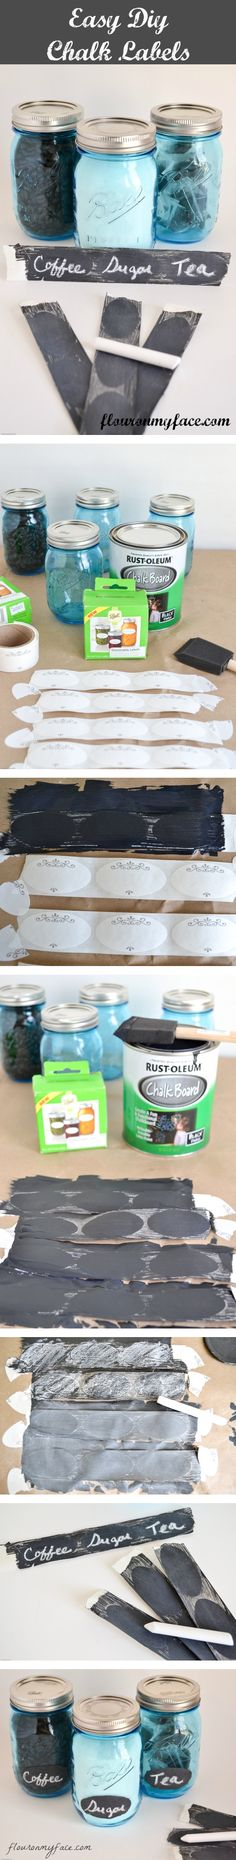 Easy DIY Chalkboard labels - could do this with any type of label, even office mailing labels?